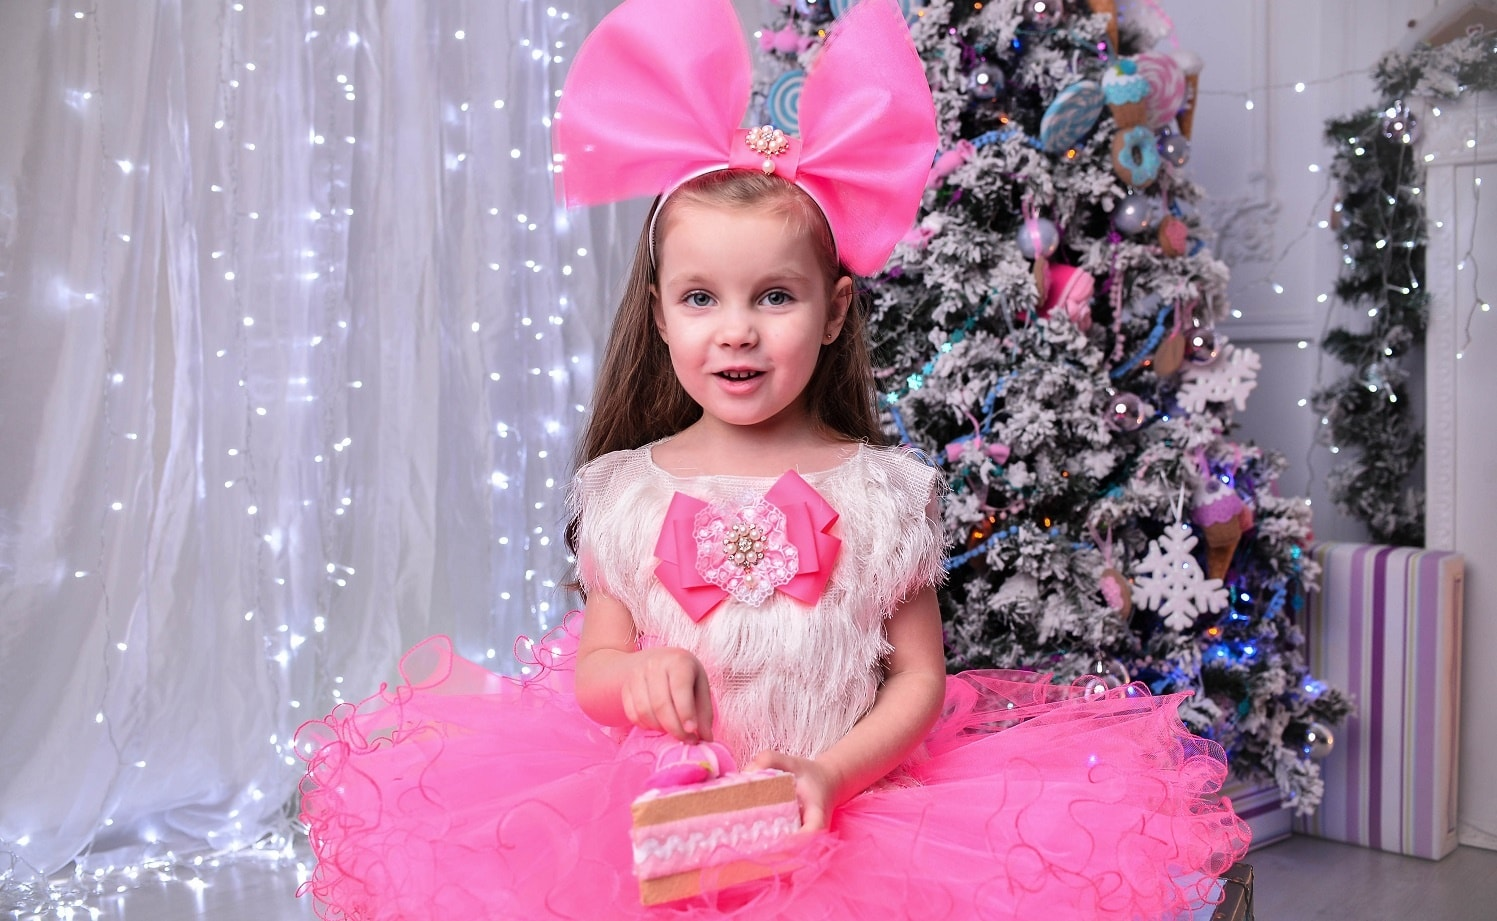 emotional birthday wishes for your daughter - Emotional Birthday Wishes for Your Daughter